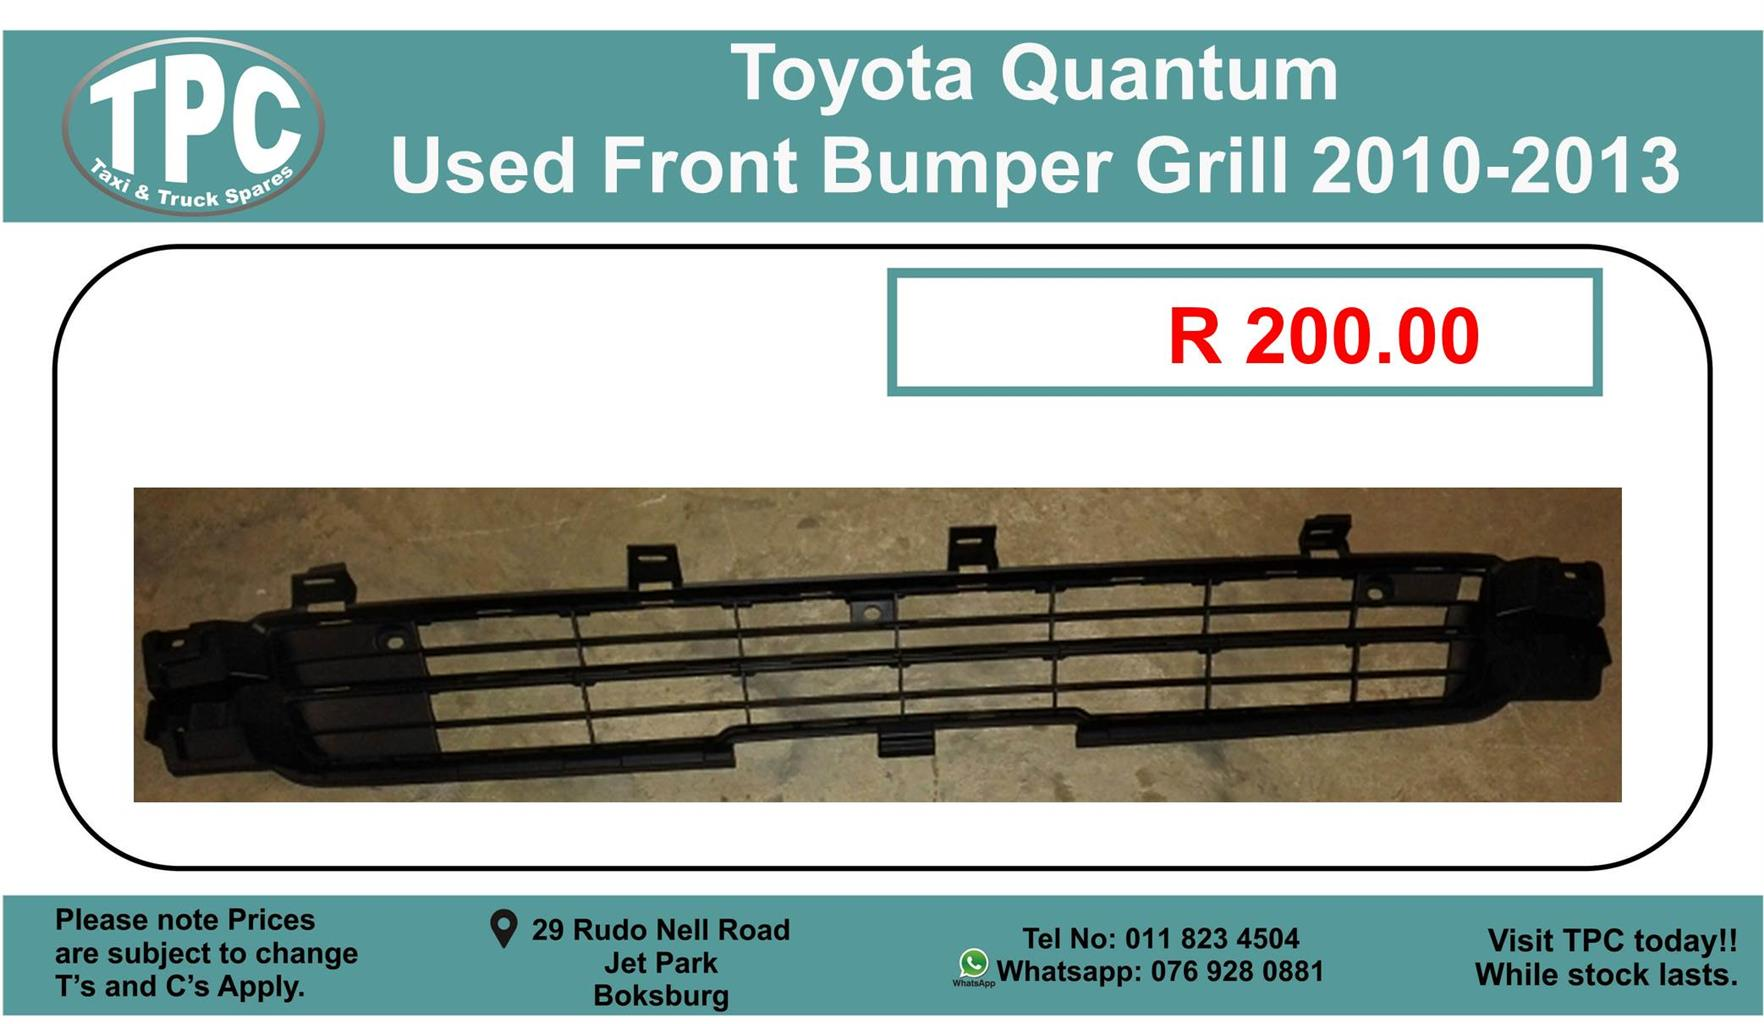 Toyota Quantum Used Front Bumper Grill 2010-2013 For Sale.